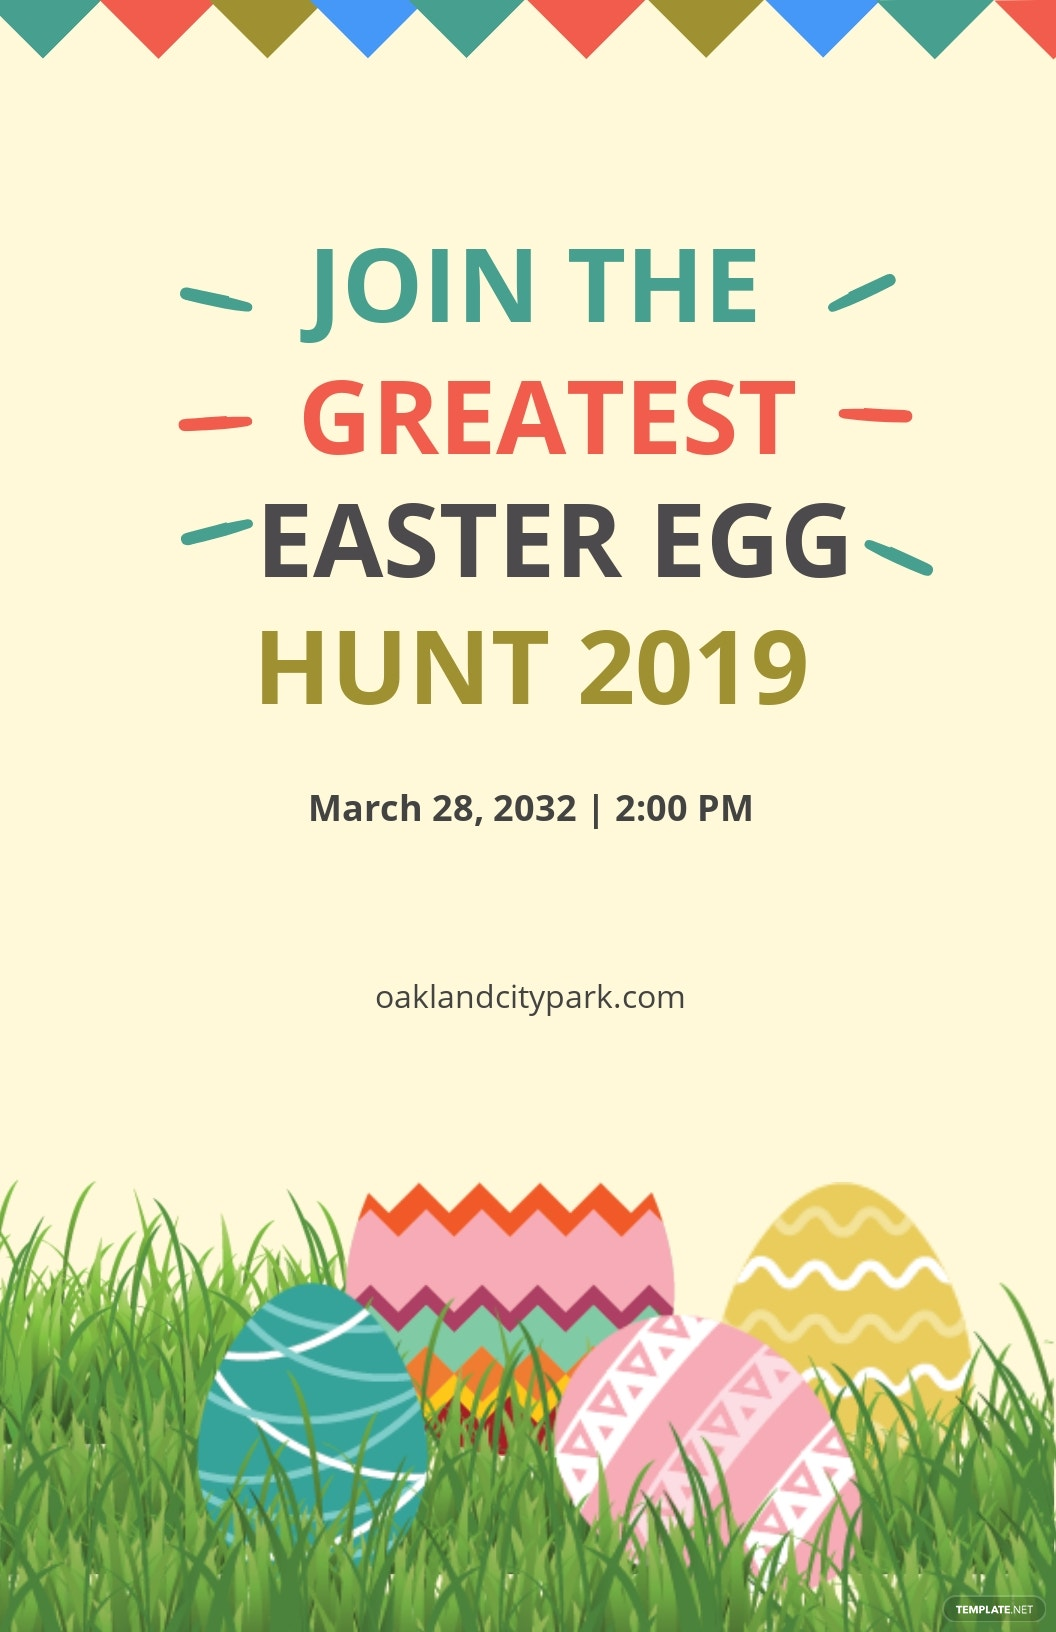 Free Easter Egg Poster Template.jpe